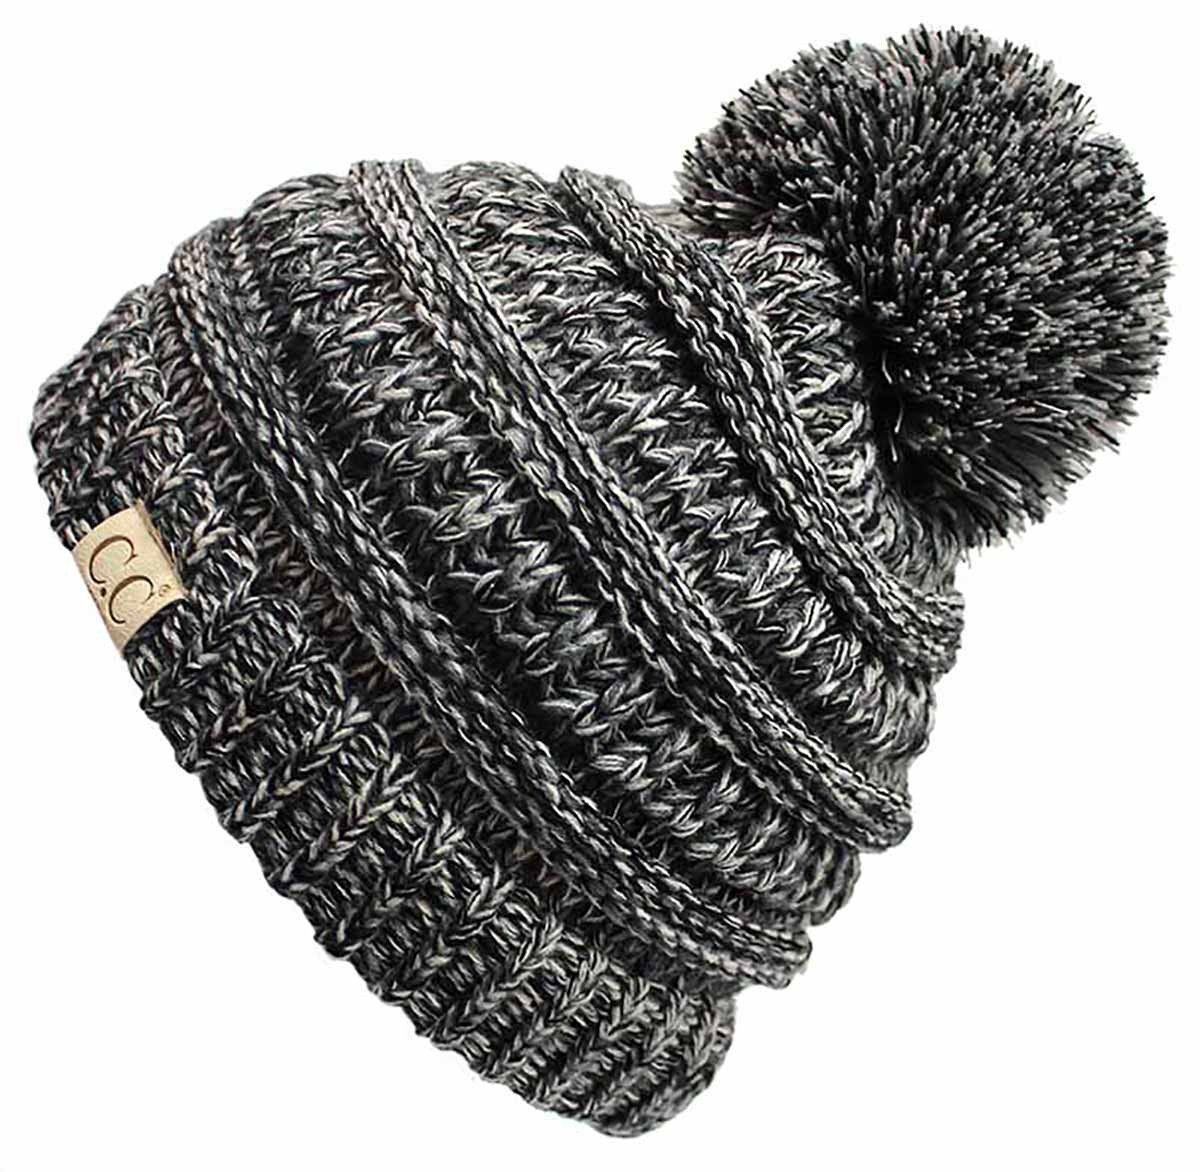 da8d9f58eef Funky Junque s CC Kids Baby Toddler Cable Knit Children s Pom Winter Hat  Beanie - 4 Tone Mix - Black